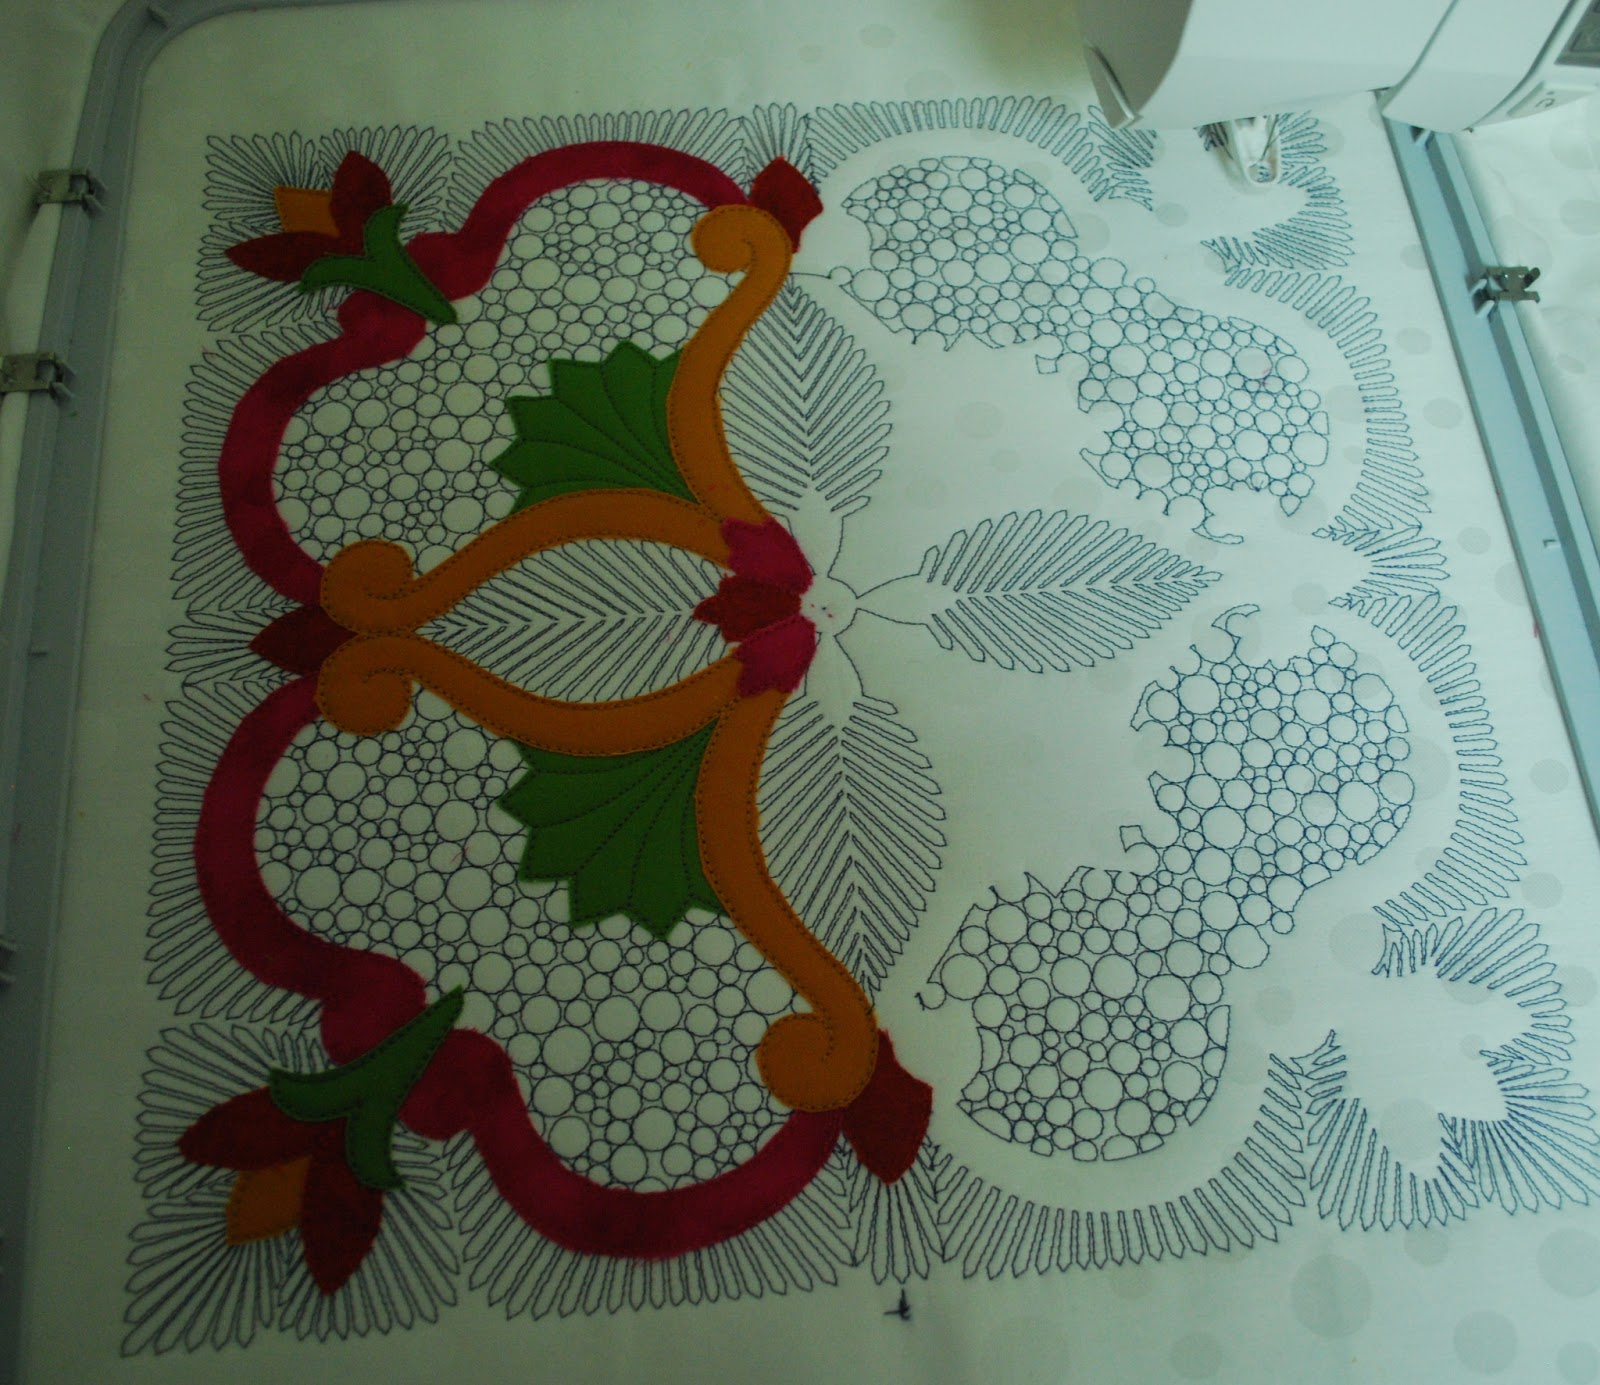 Seecherylsew husqvarna viking embroidery applique design